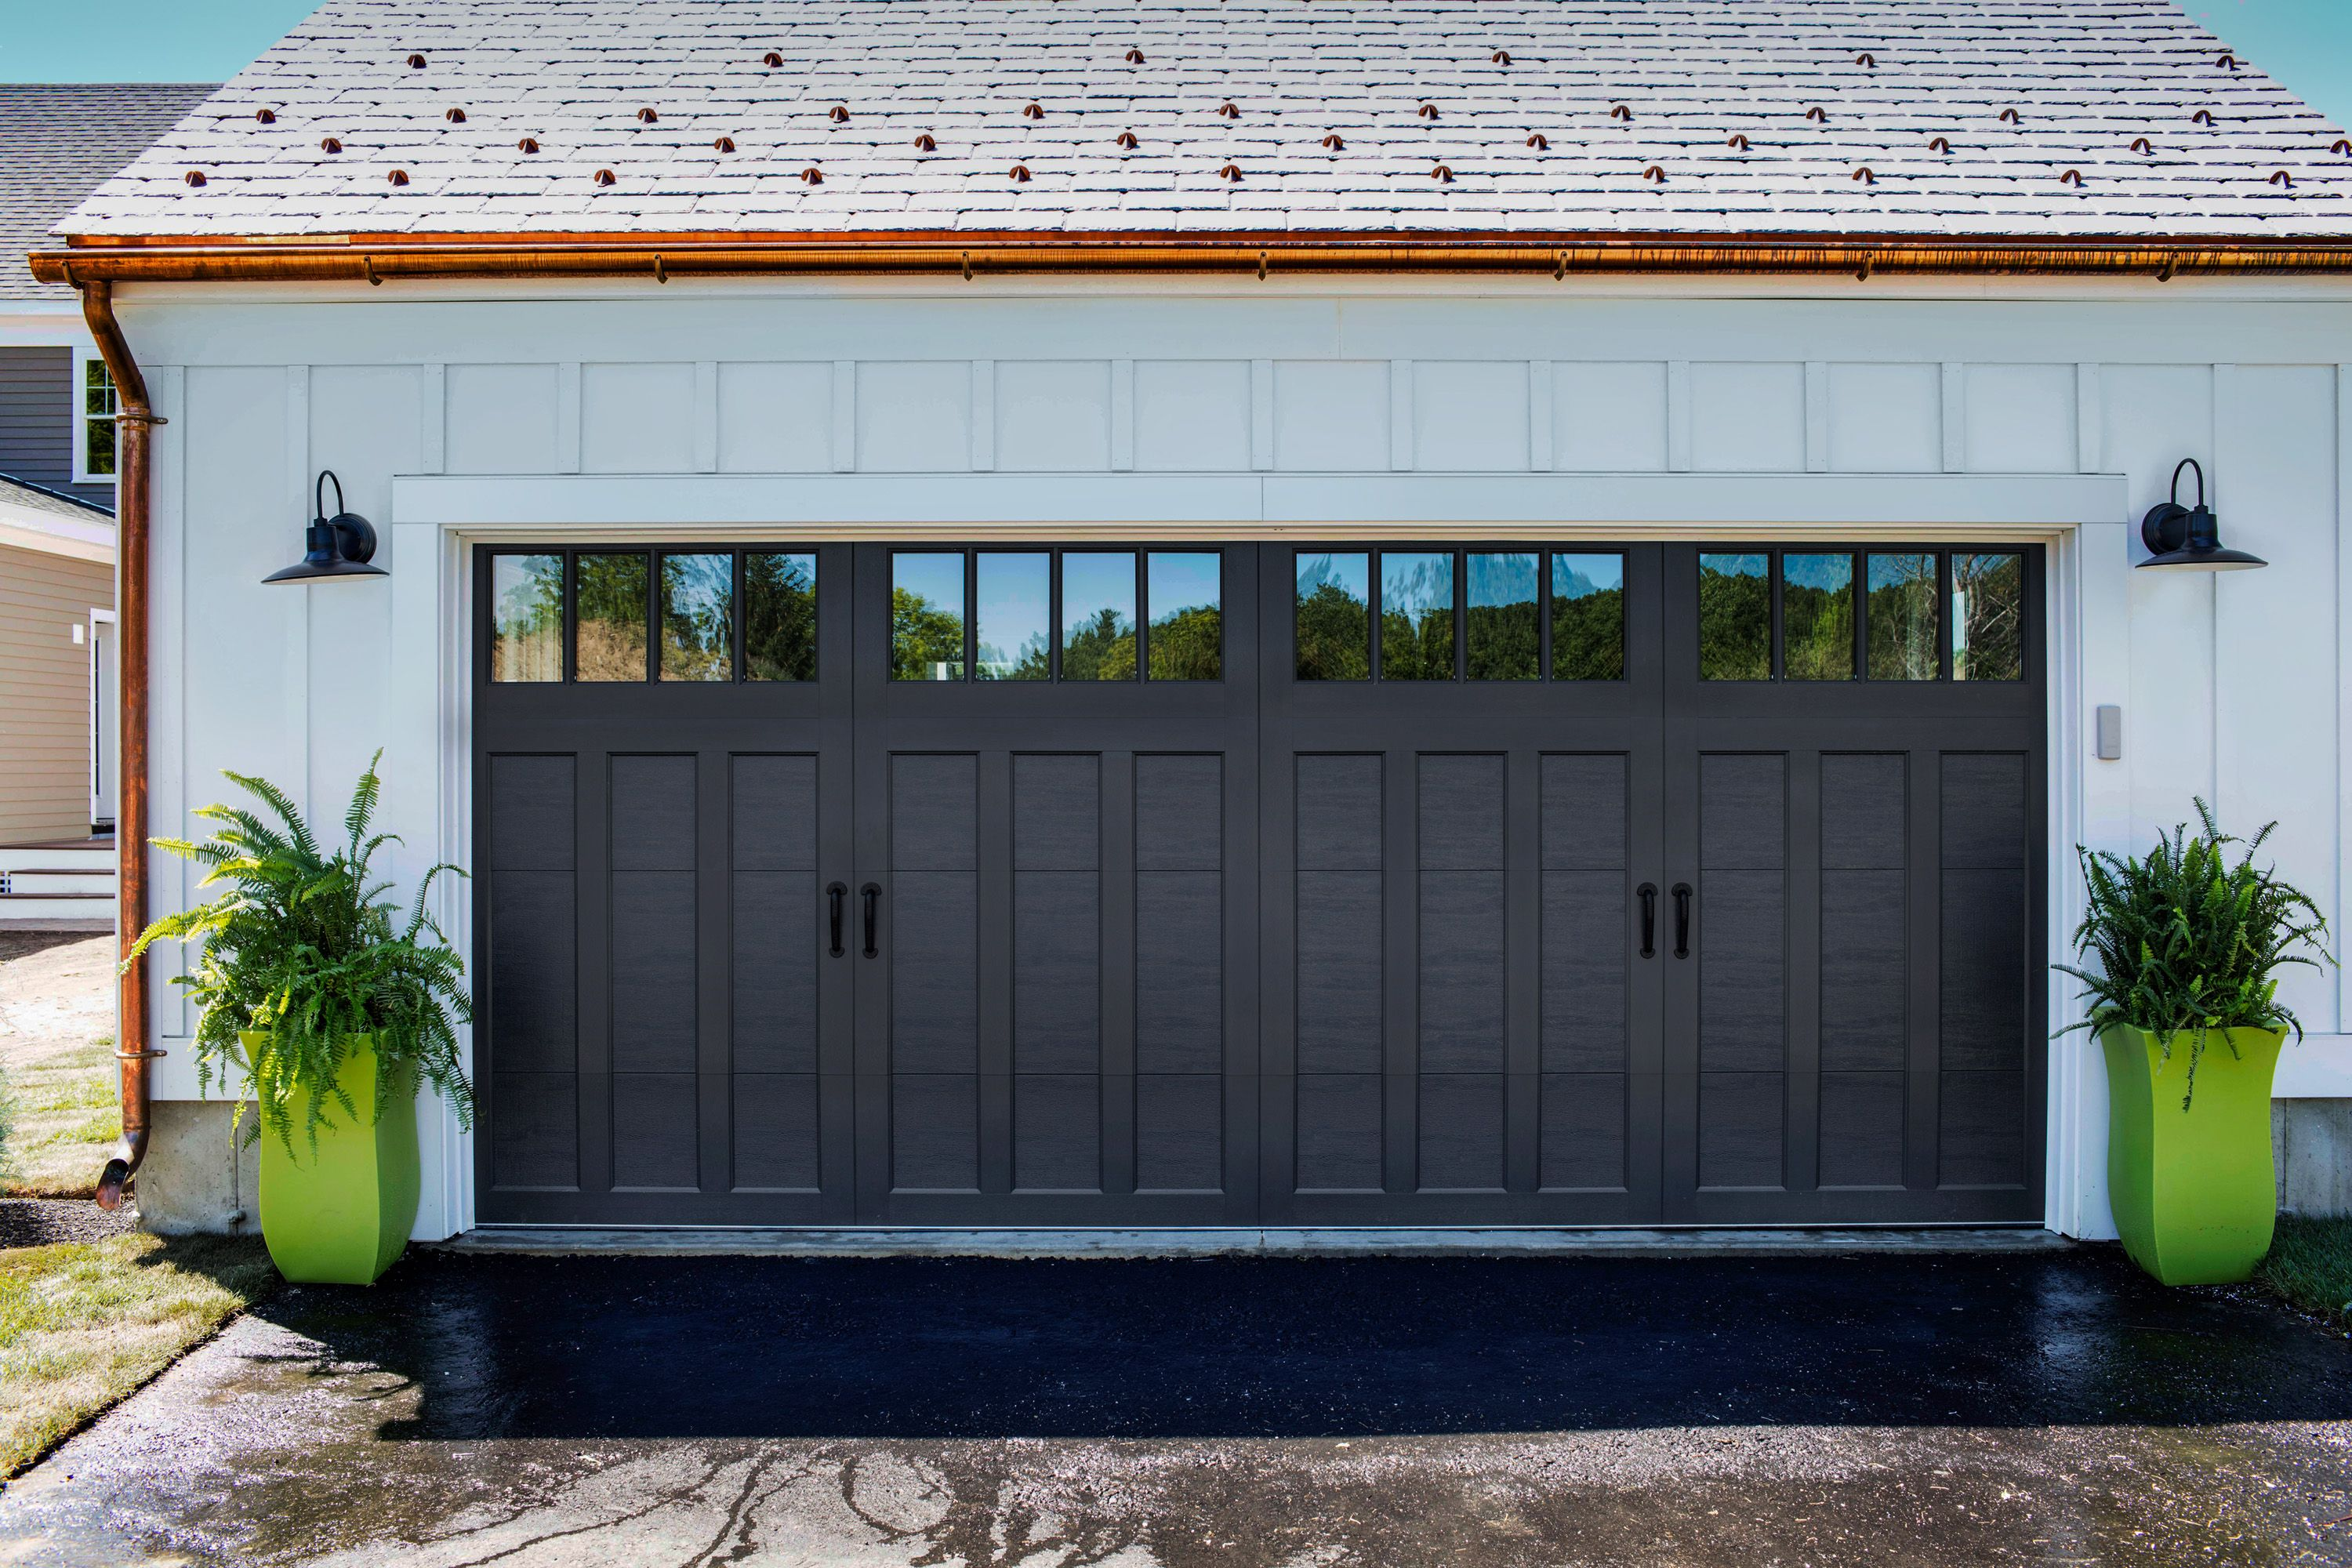 Clopay coachman collection carriage house garage door for Clopay garage door colors